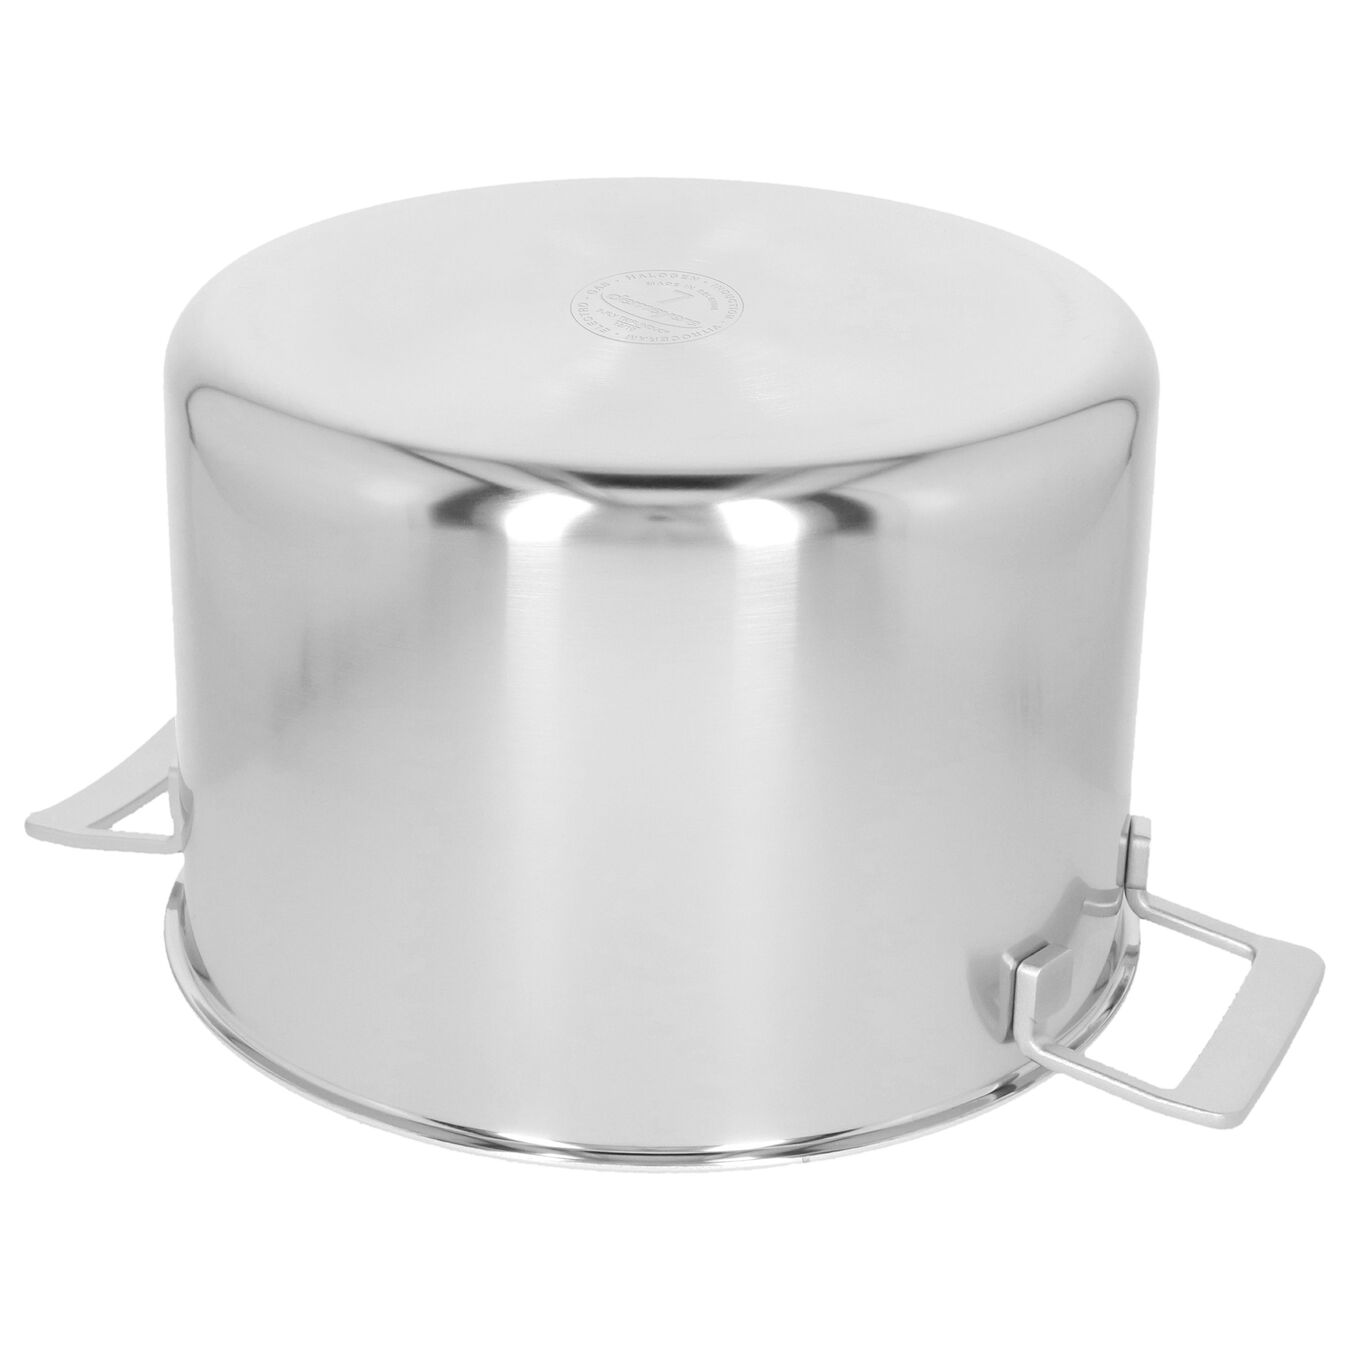 11.5 l 18/10 Stainless Steel Stock pot with lid,,large 4